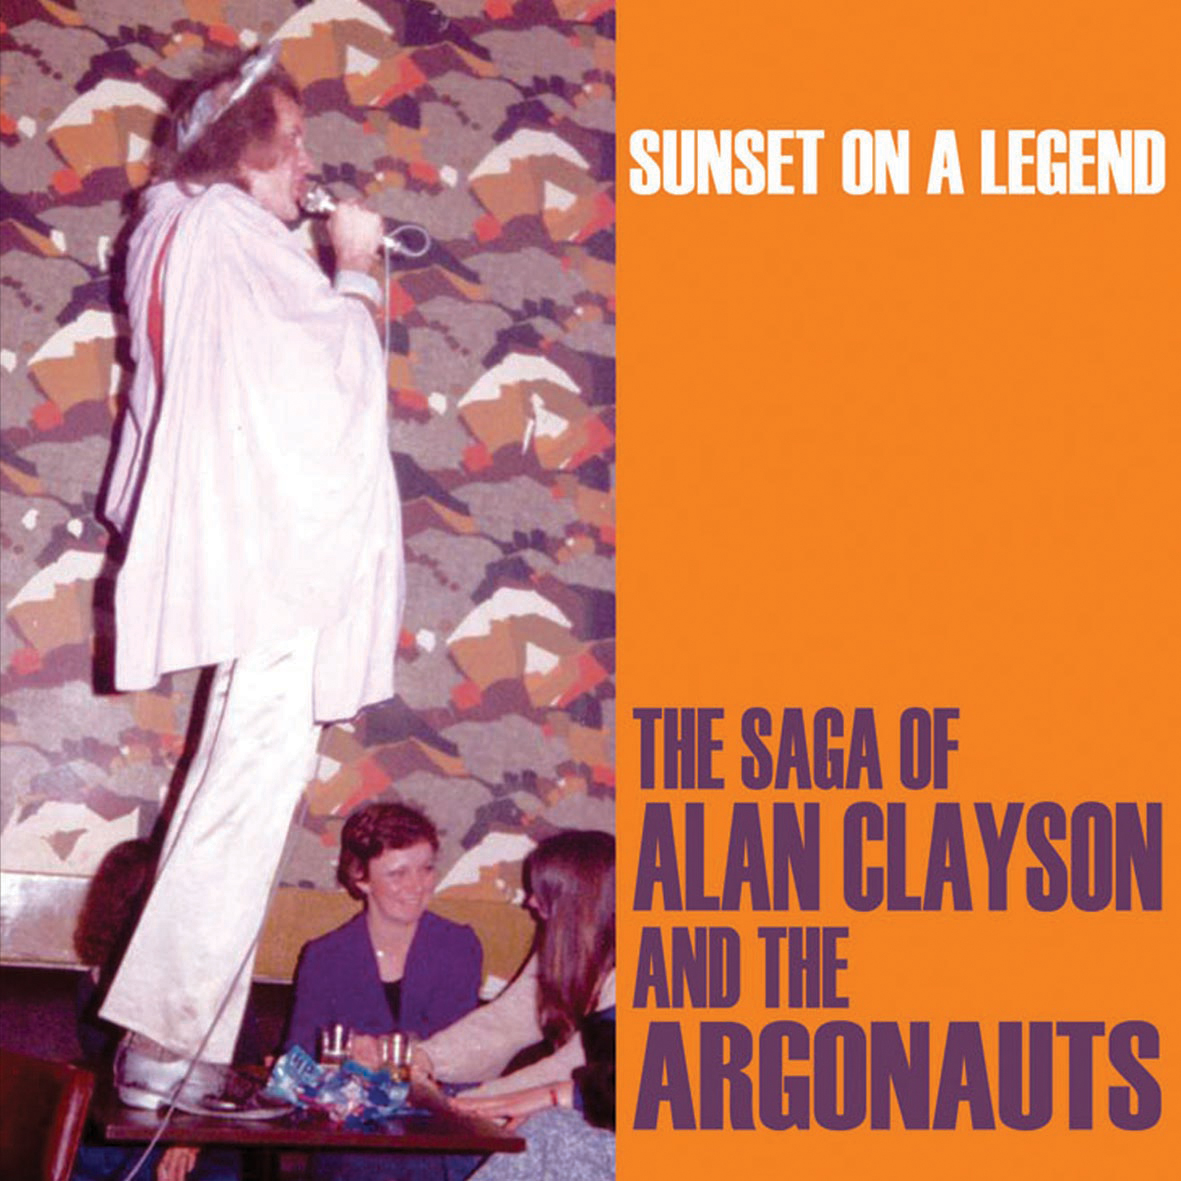 Clayson And The Argonauts The Taster